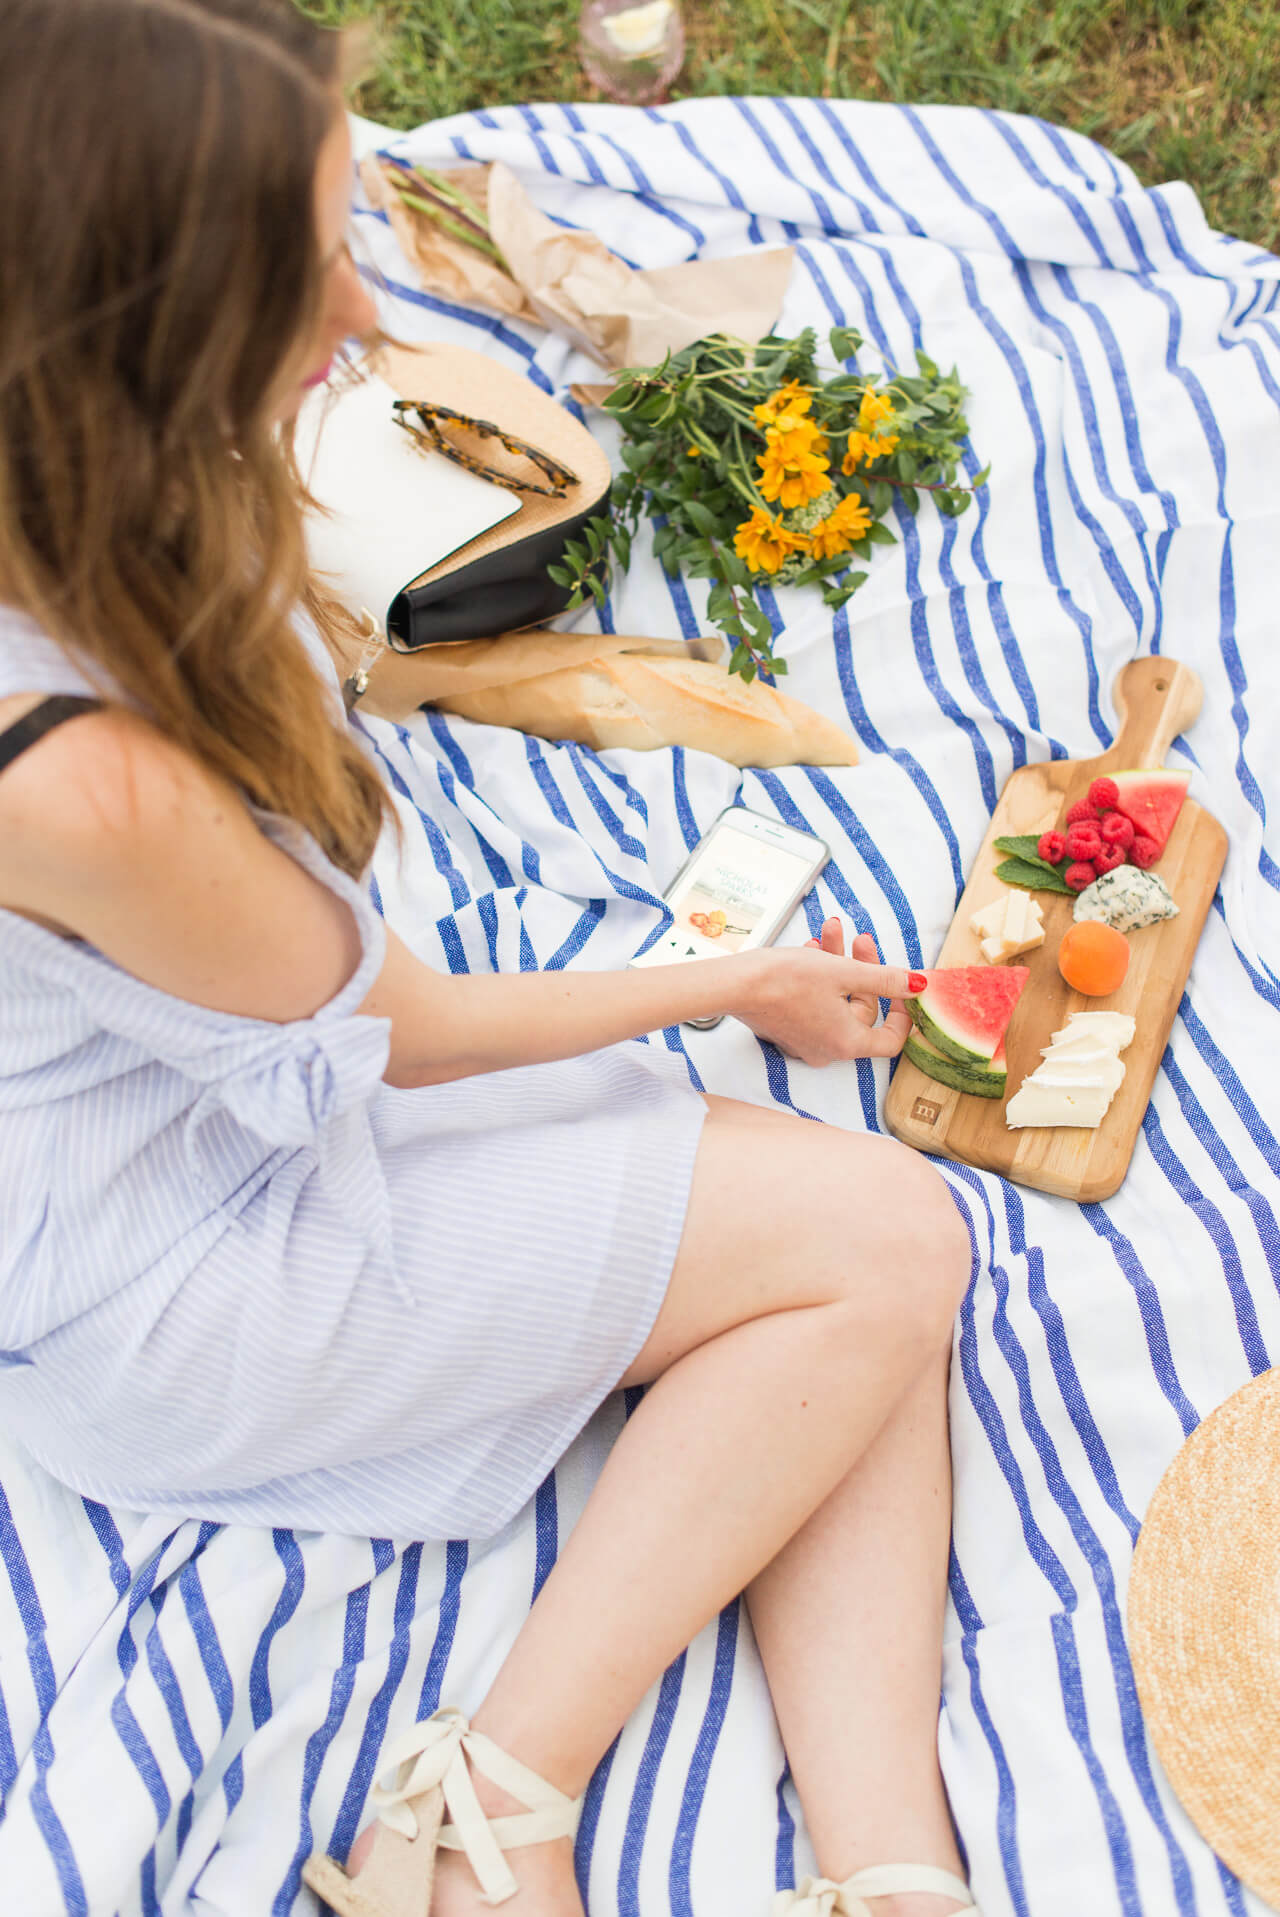 check out my latest blog post on these picnic bites - M Loves M @marmar